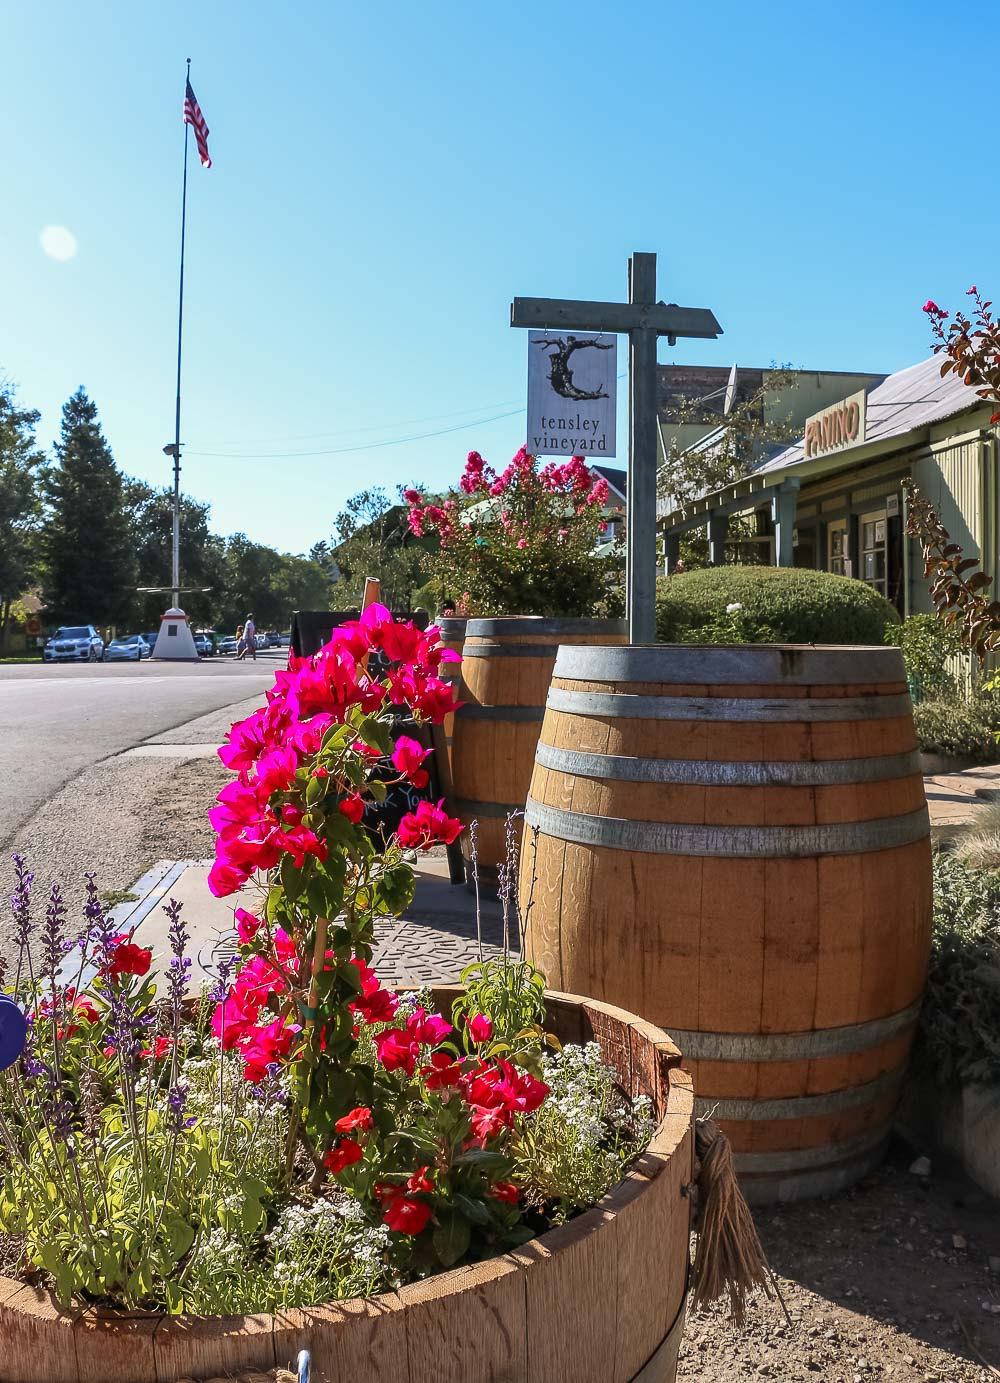 Visit Los Olivos - Roads and Destinations, roadsanddestinations.com